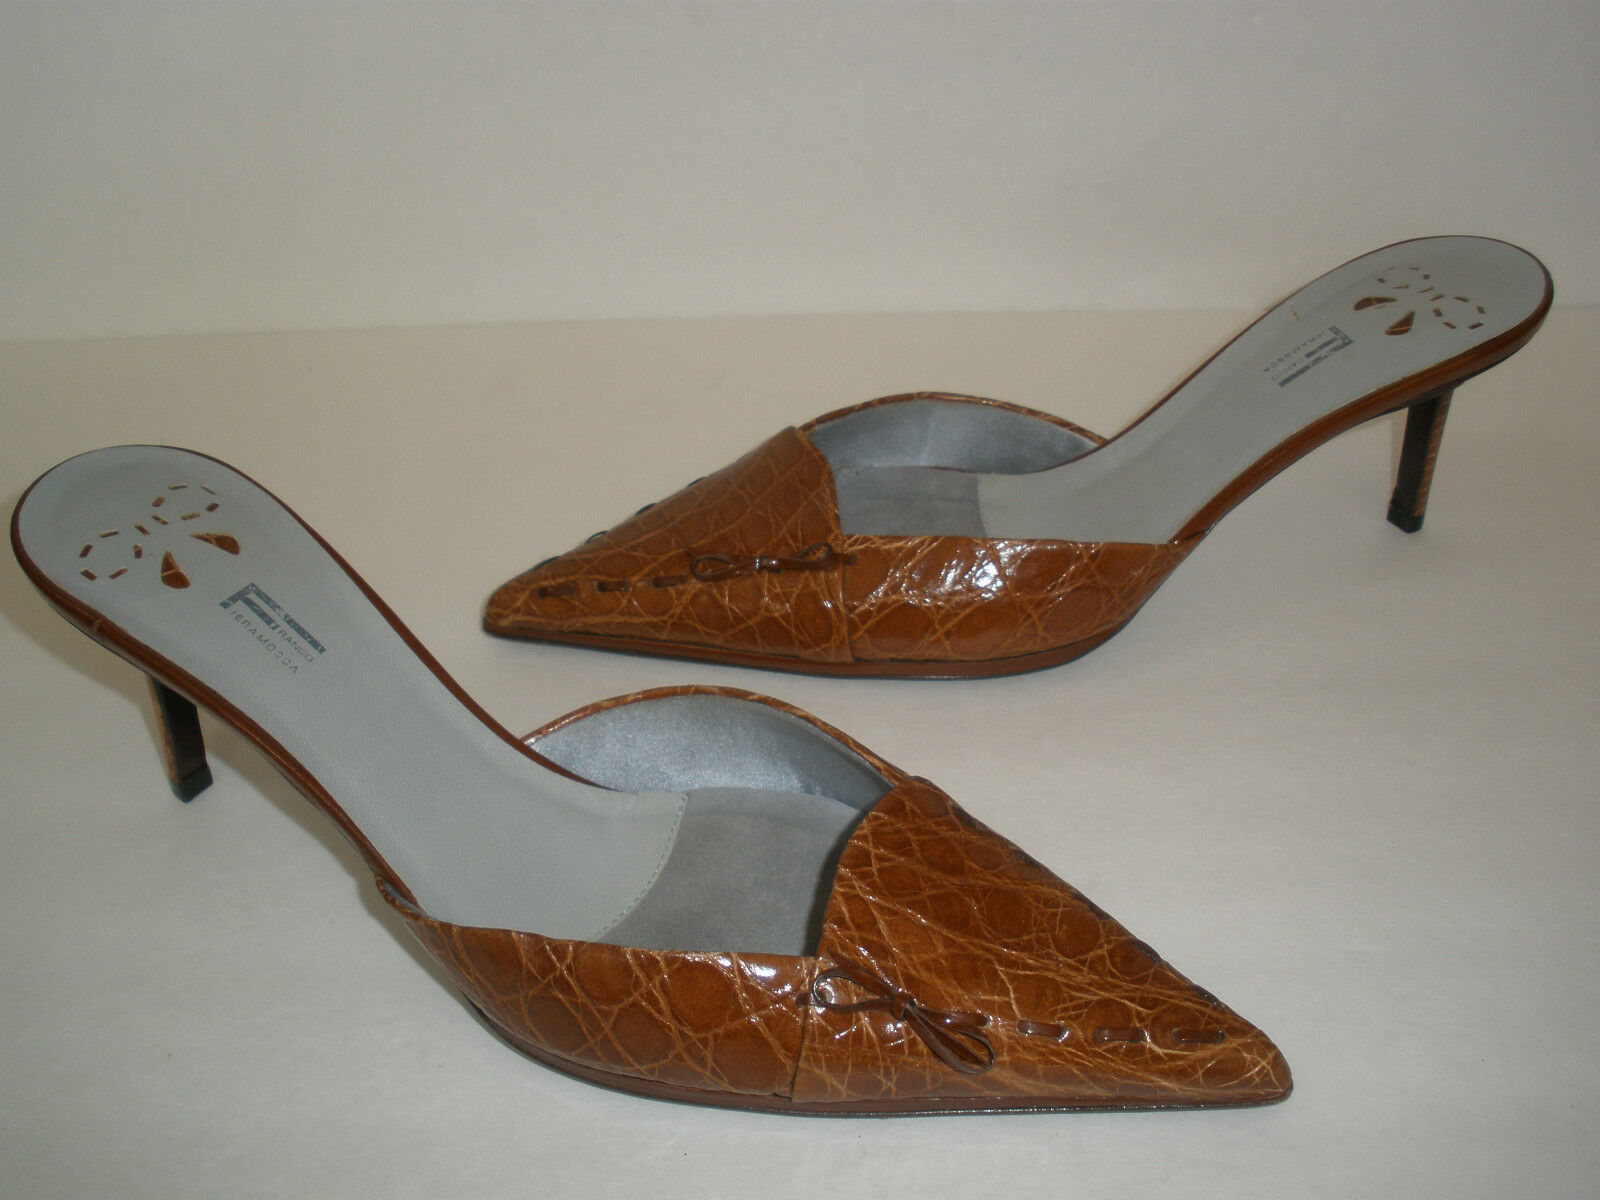 NEW FRANCO FIRAMOSCA LEATHER HEELS US 9.5 EUR 39.5 39.5 39.5 HOT SEXY MADE IN ITALY 017489